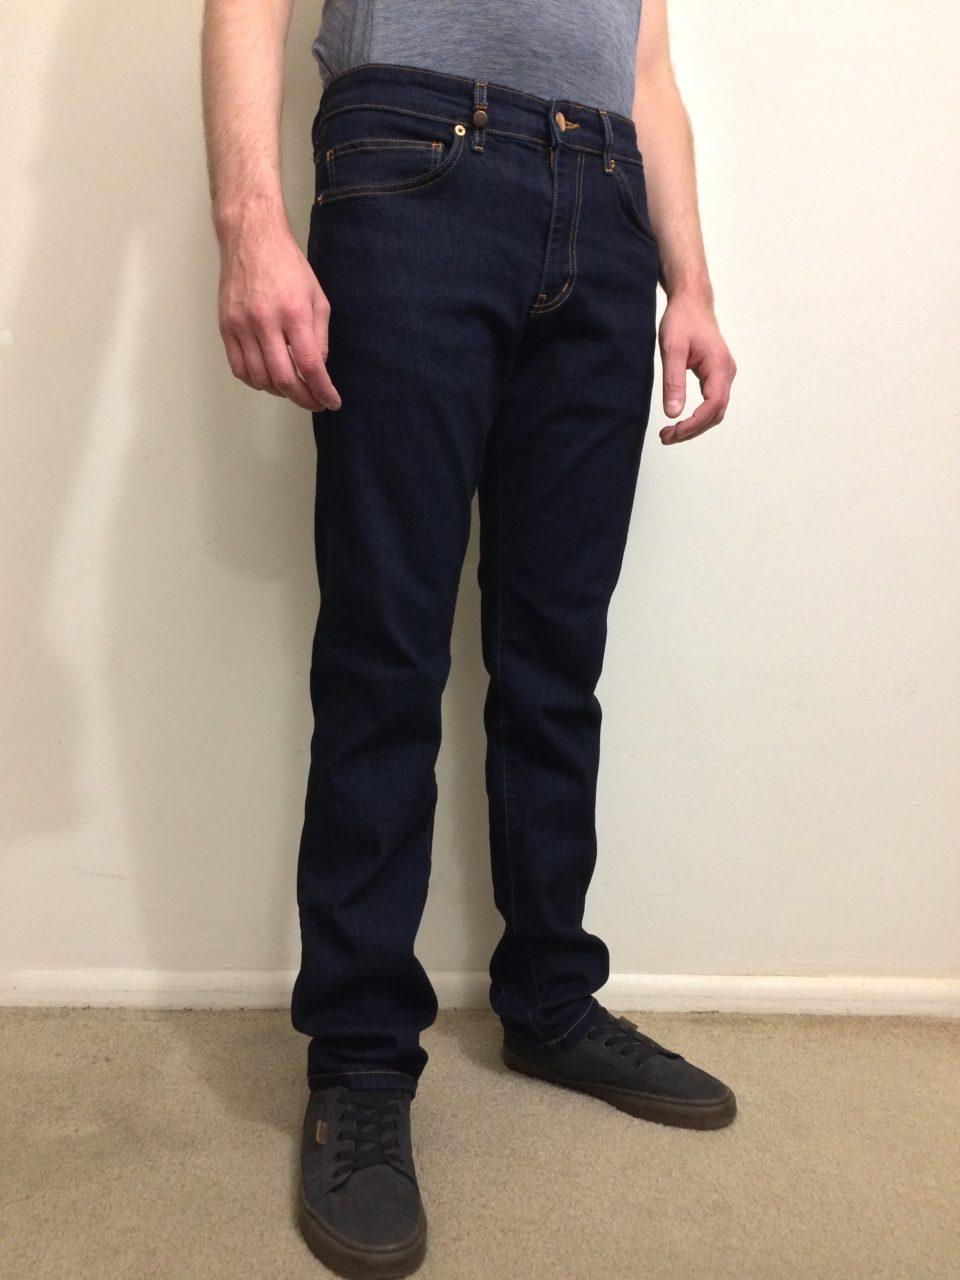 Aviator USA Jeans full view